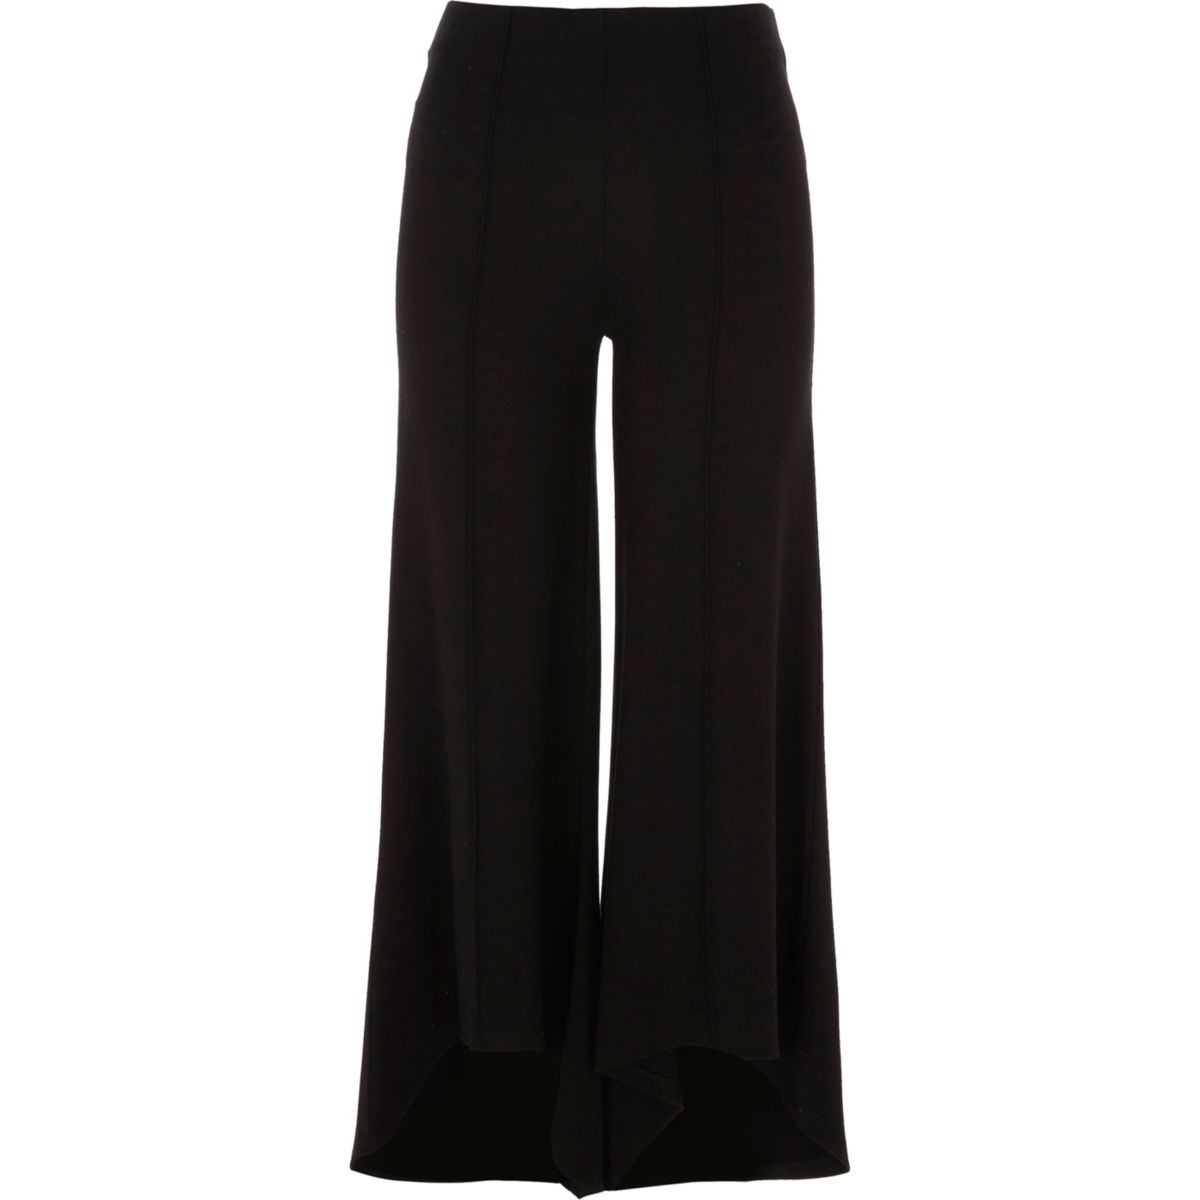 Black flared jersey pants